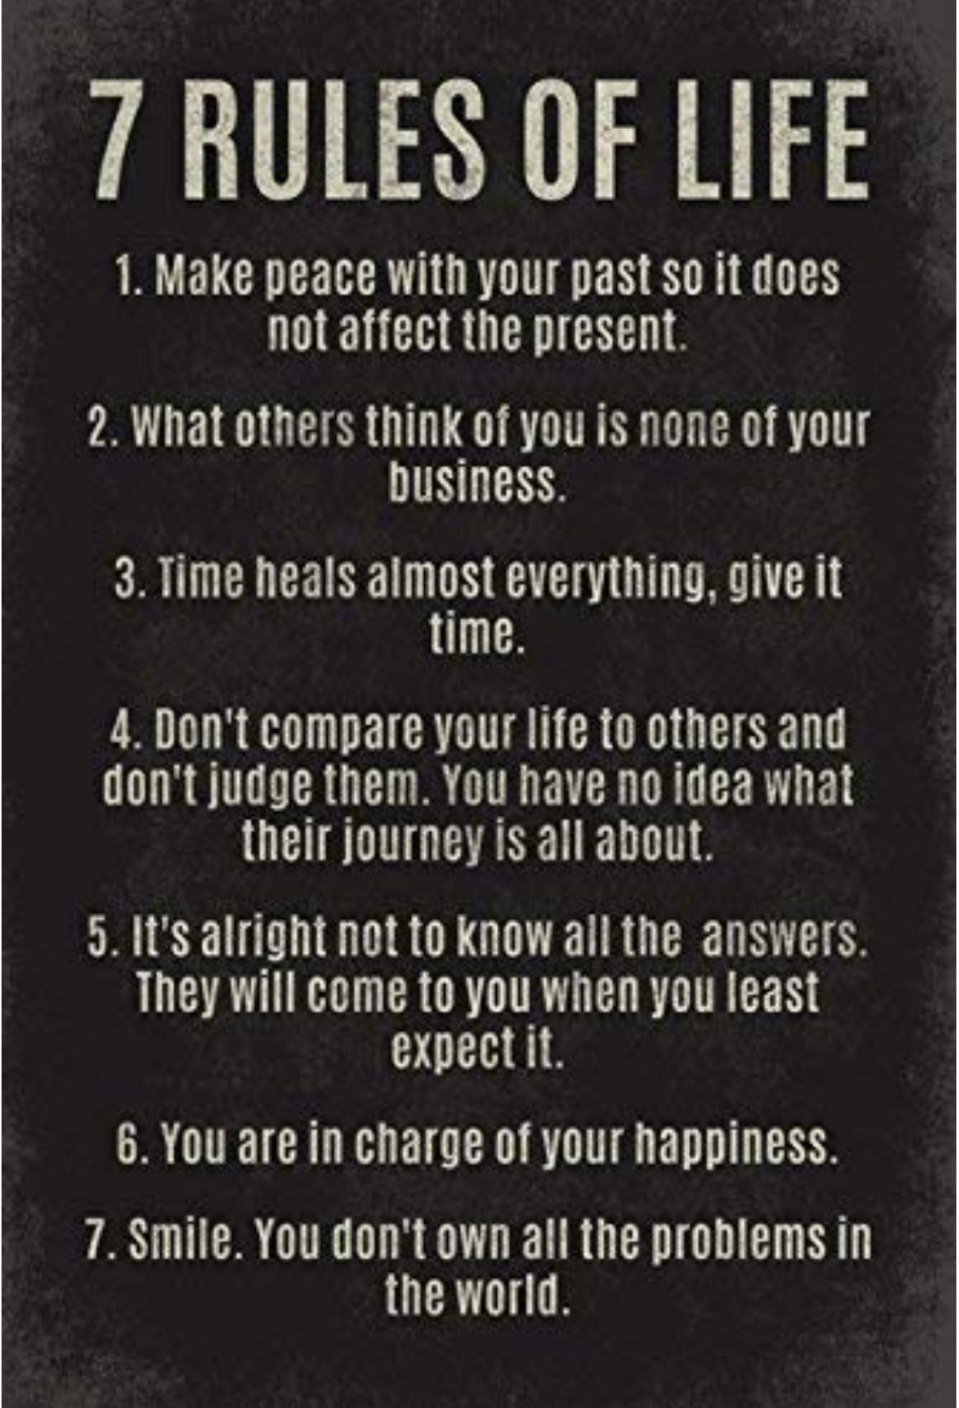 [Image] 7 rules to a satisfied living. Keep up the good work, and remmember you only have to be better than you were yesterday, 1% everyday that is all is needed.